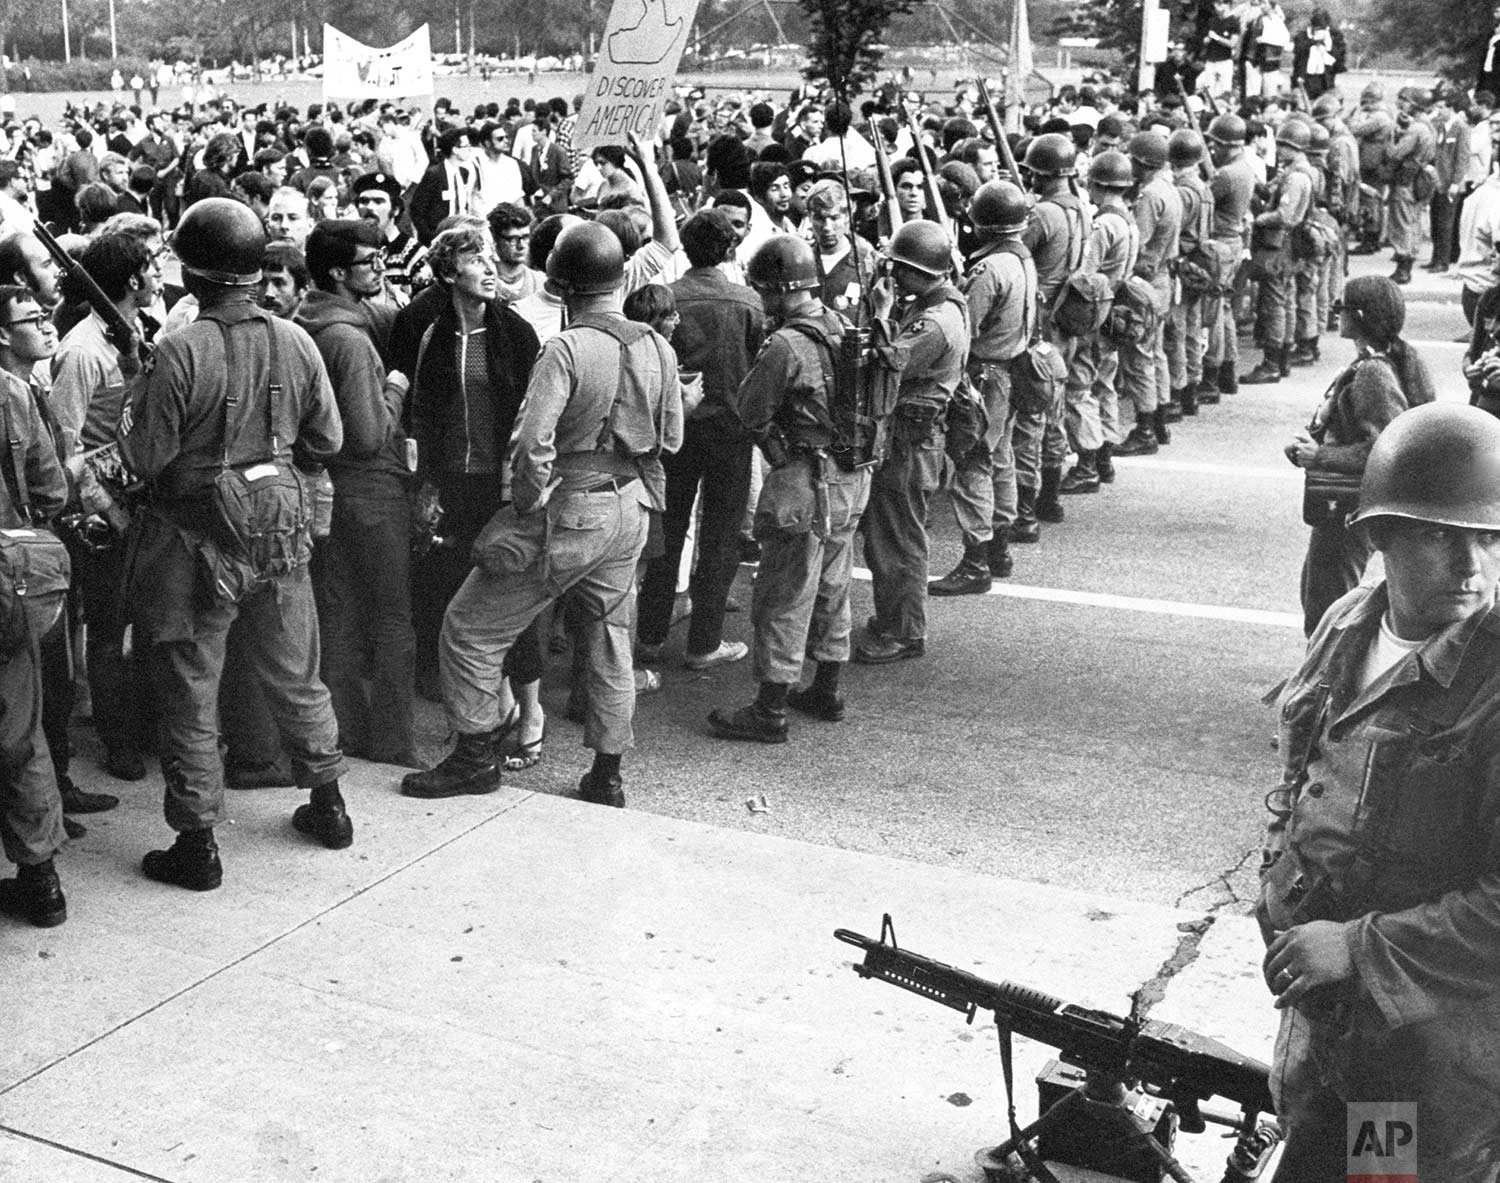 A National Guardsman stands beside a machine gun as others form a barrier against demonstrators in Chicago's Grant Park on August 28, 1968. (AP Photo)